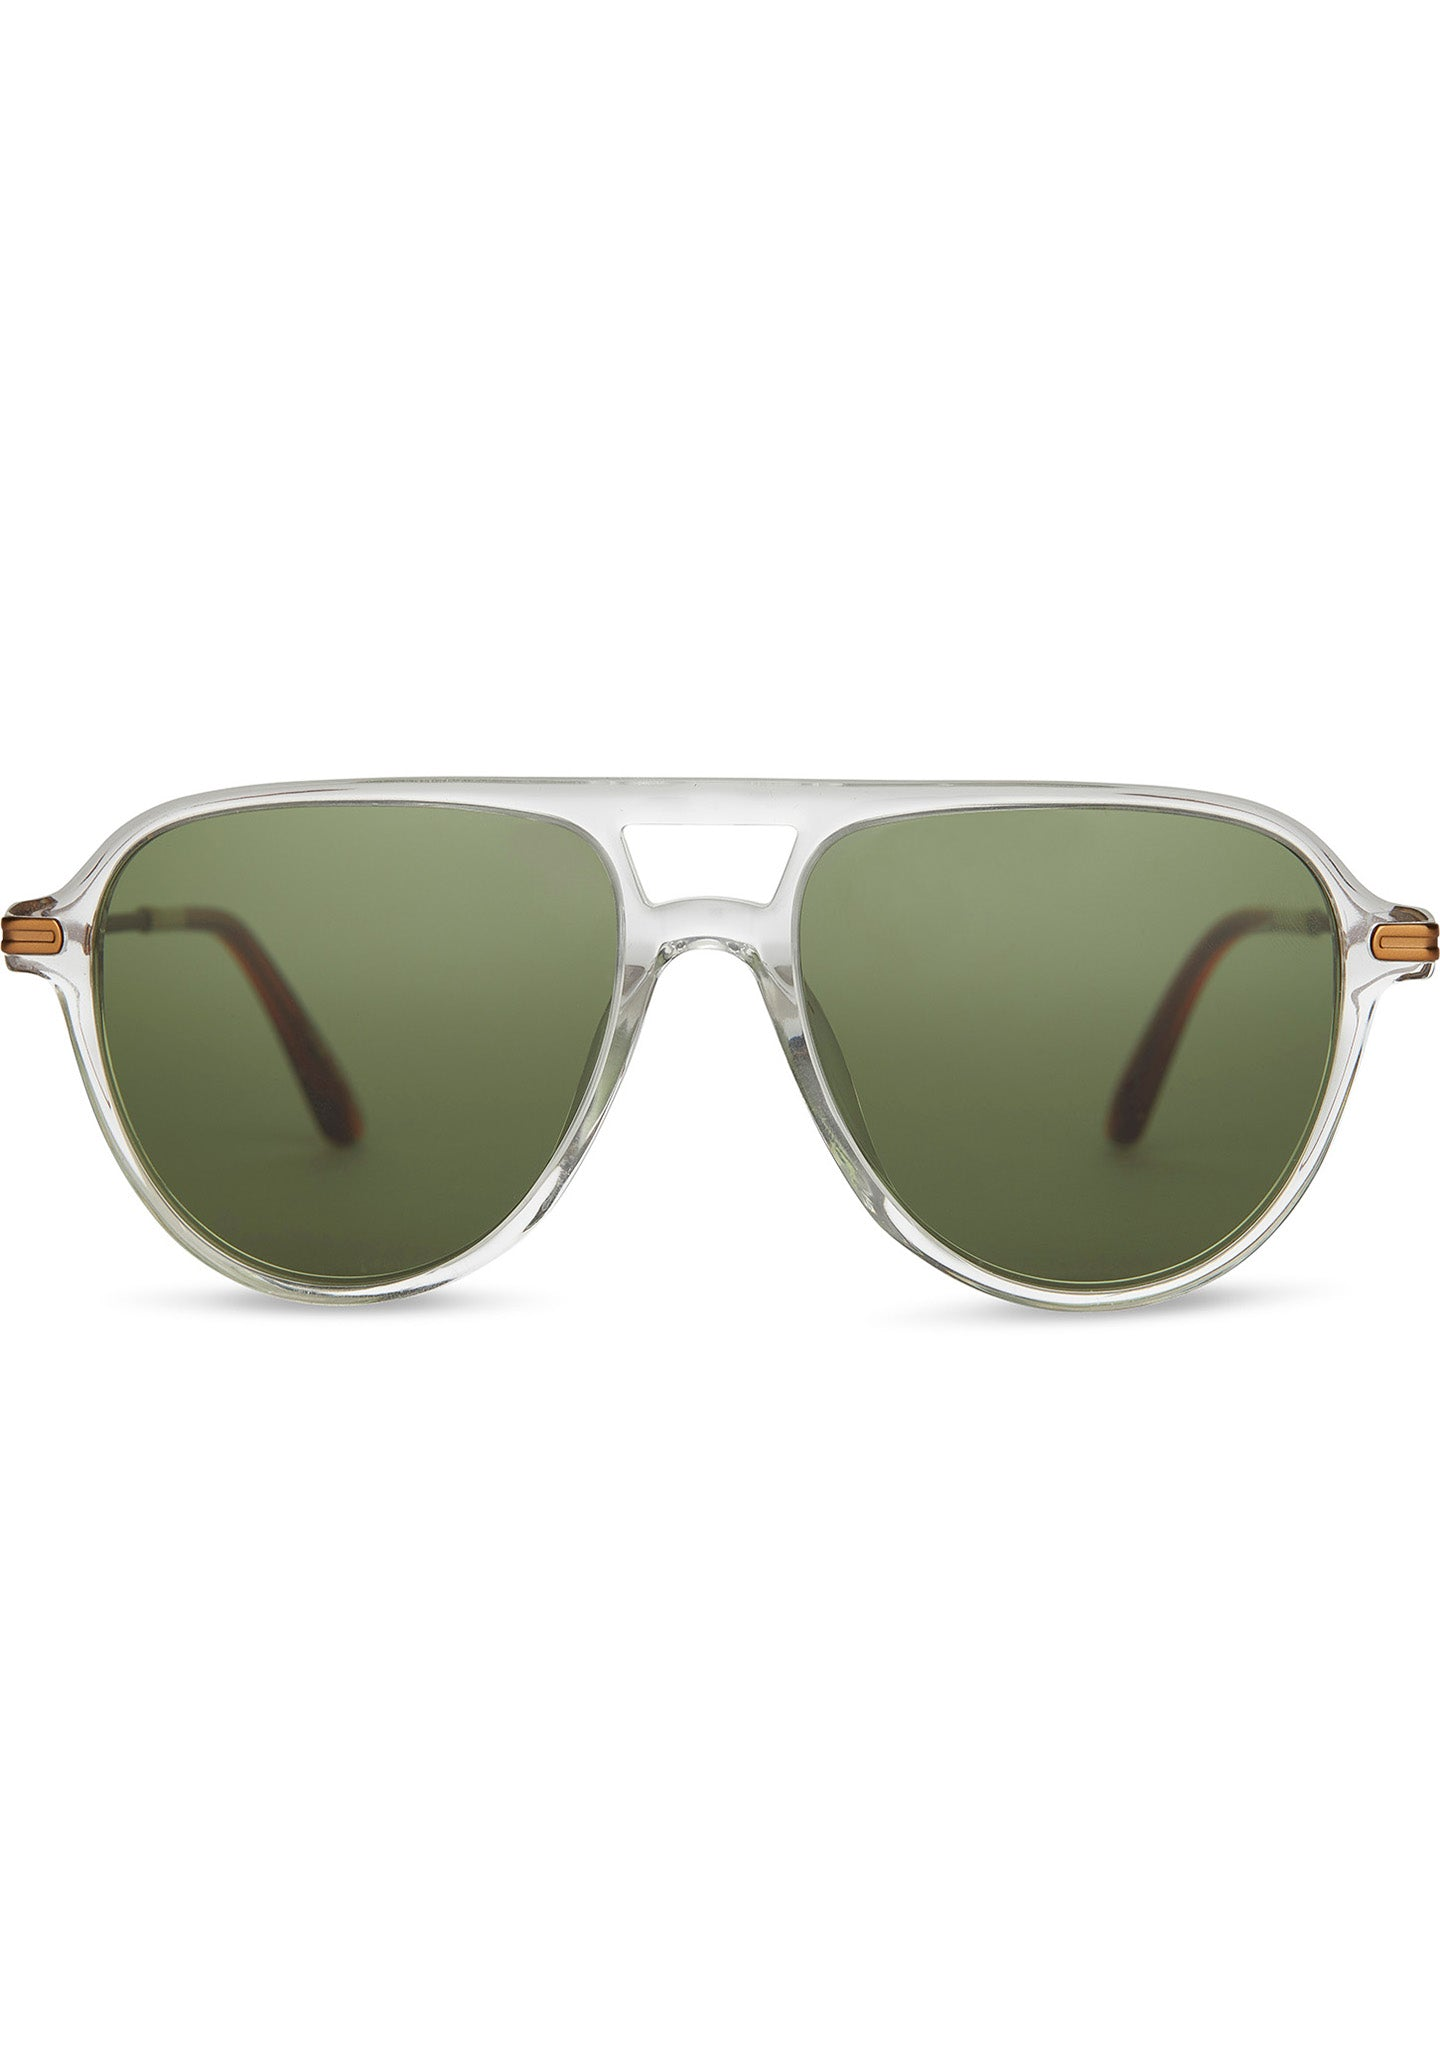 TOMS Beckett Sunglasses in Vintage Crystal/Green